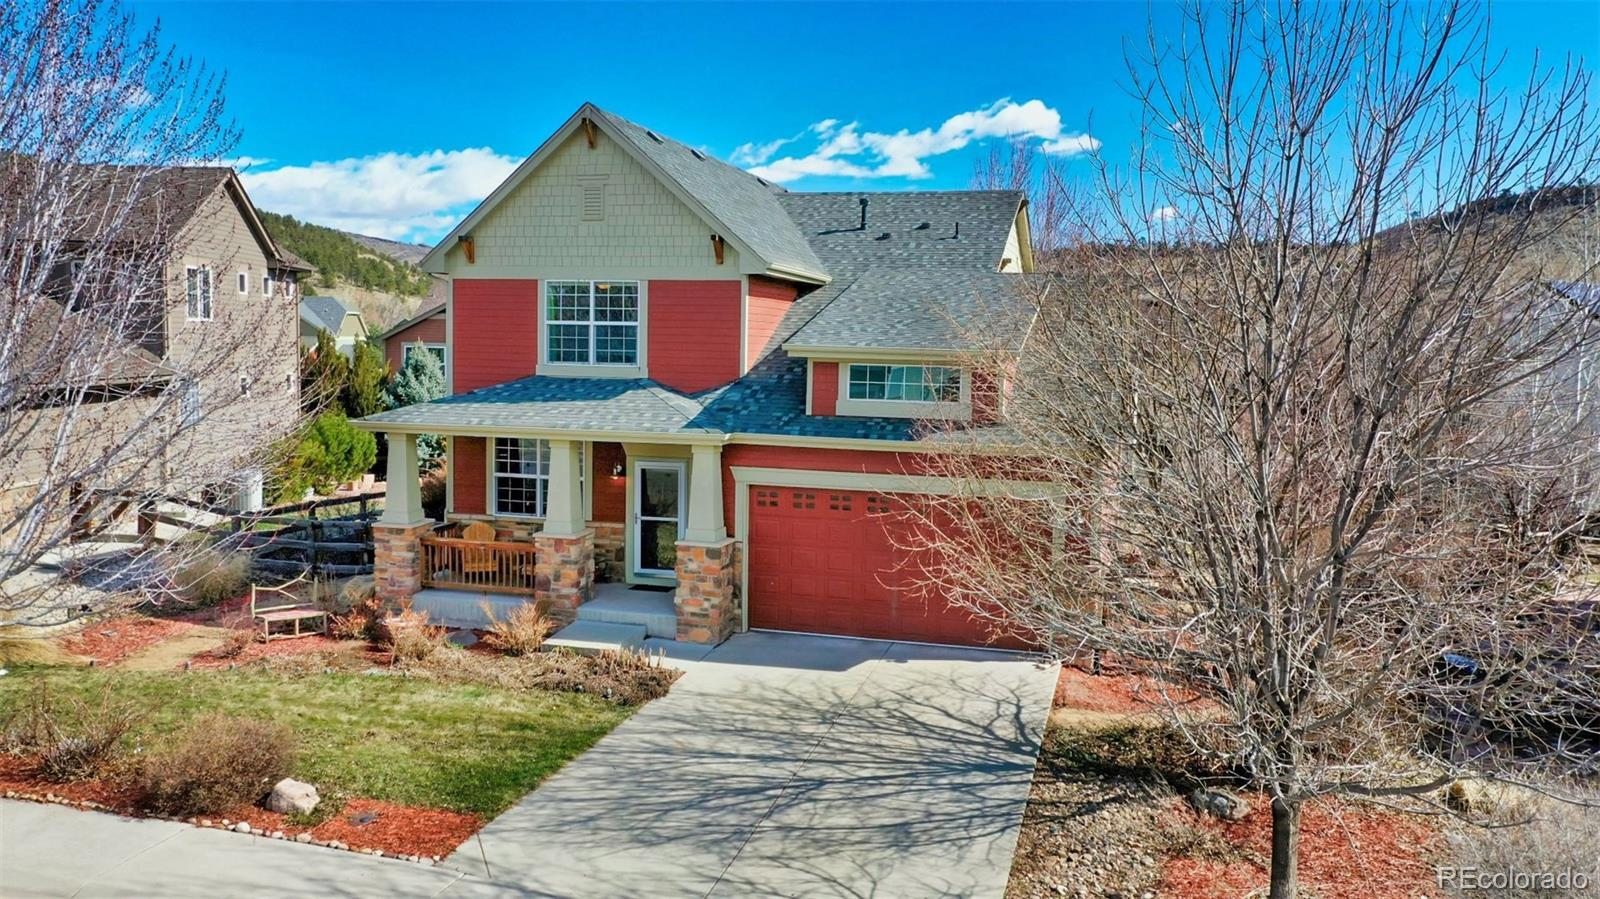 108 Noland Court, Lyons, CO 80540 - #: 3225401